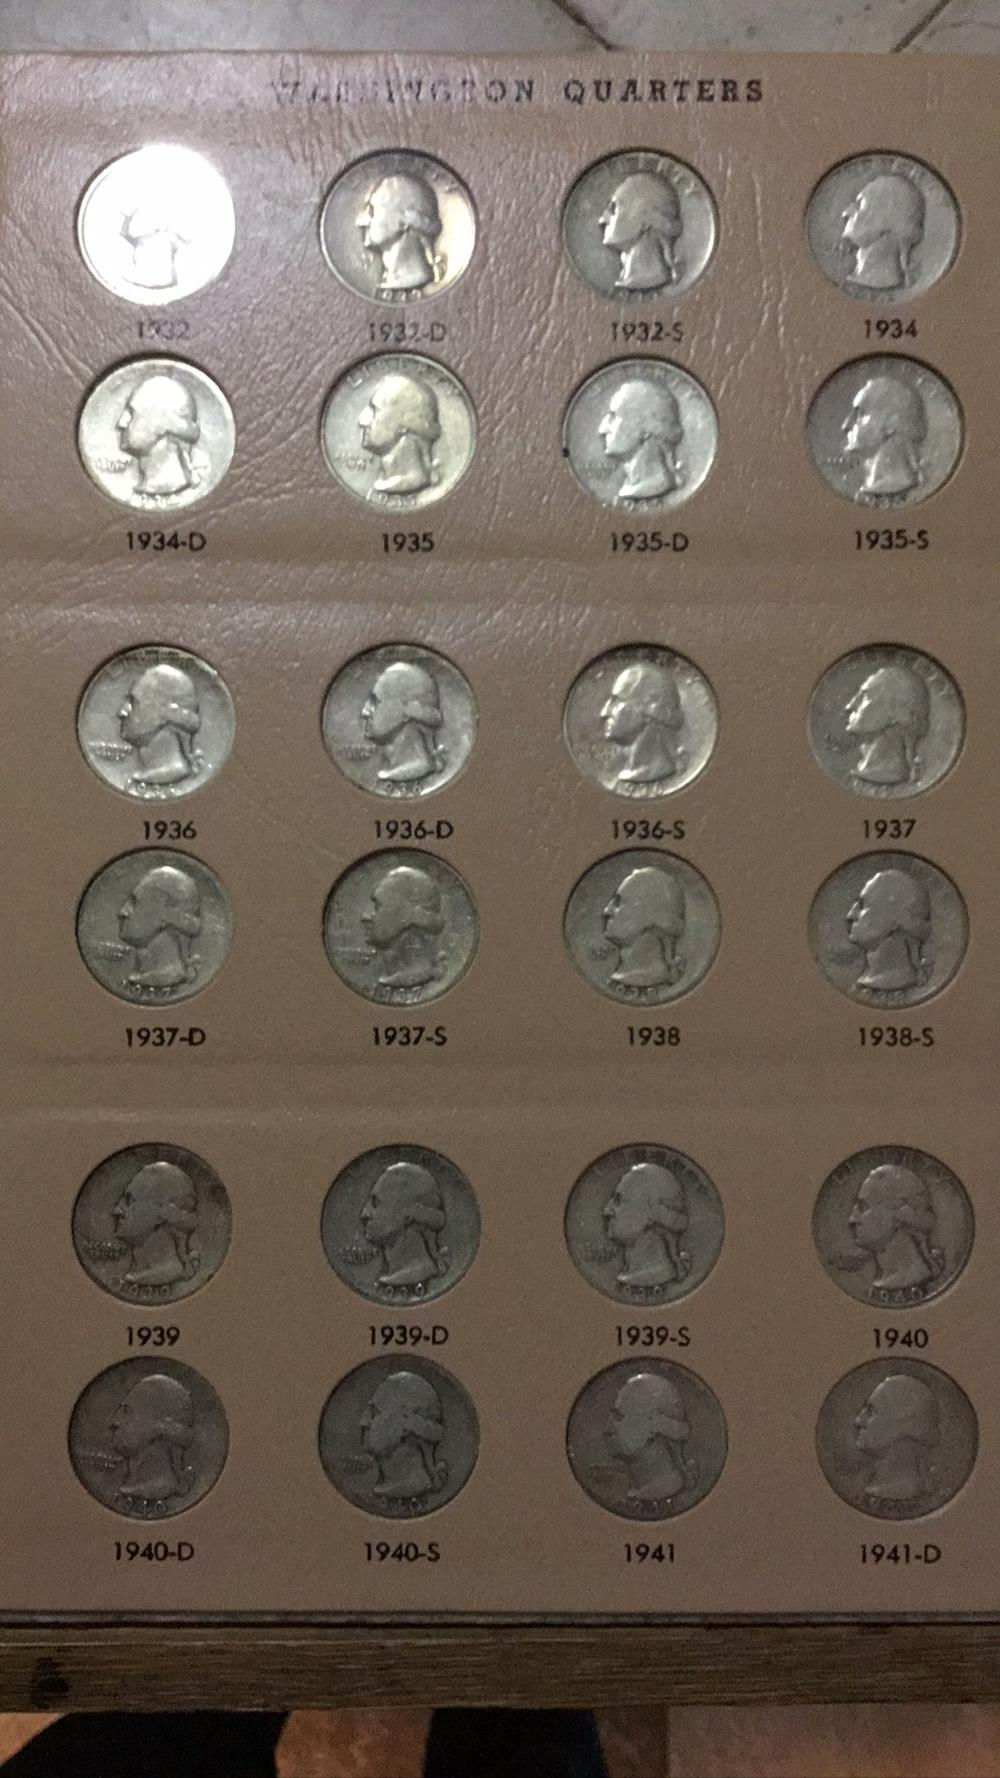 Washington Quarters Sheet